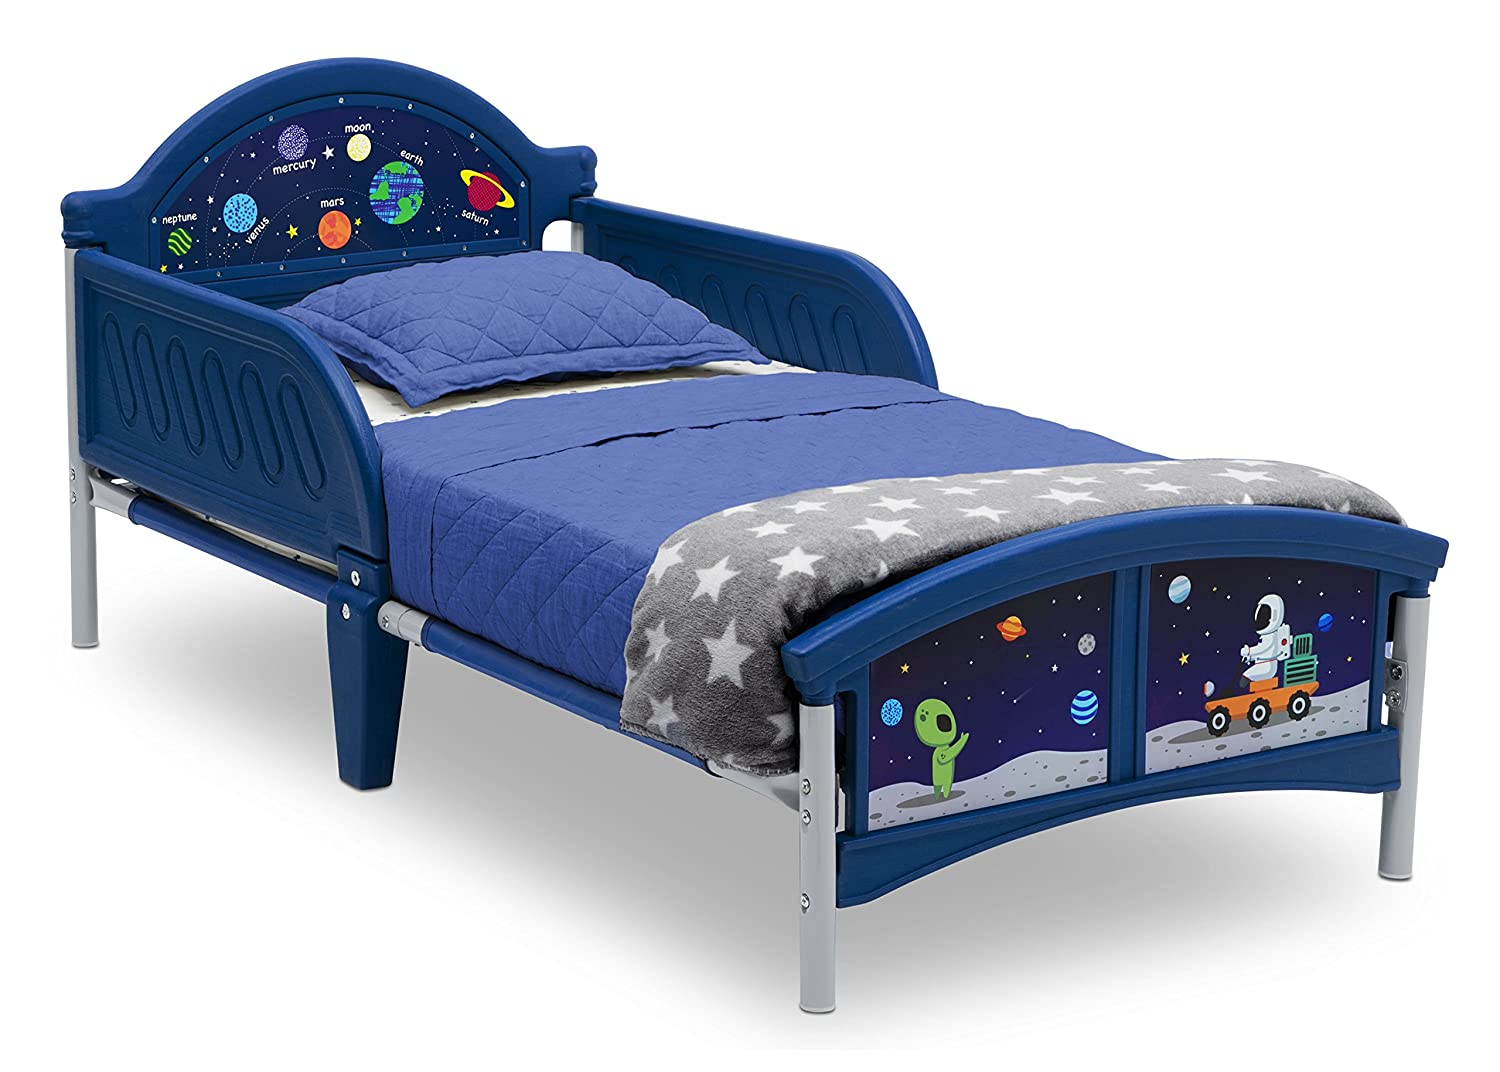 Rainbow Dreams Toddler Bed with Bedguard Delta Children BB81403RD